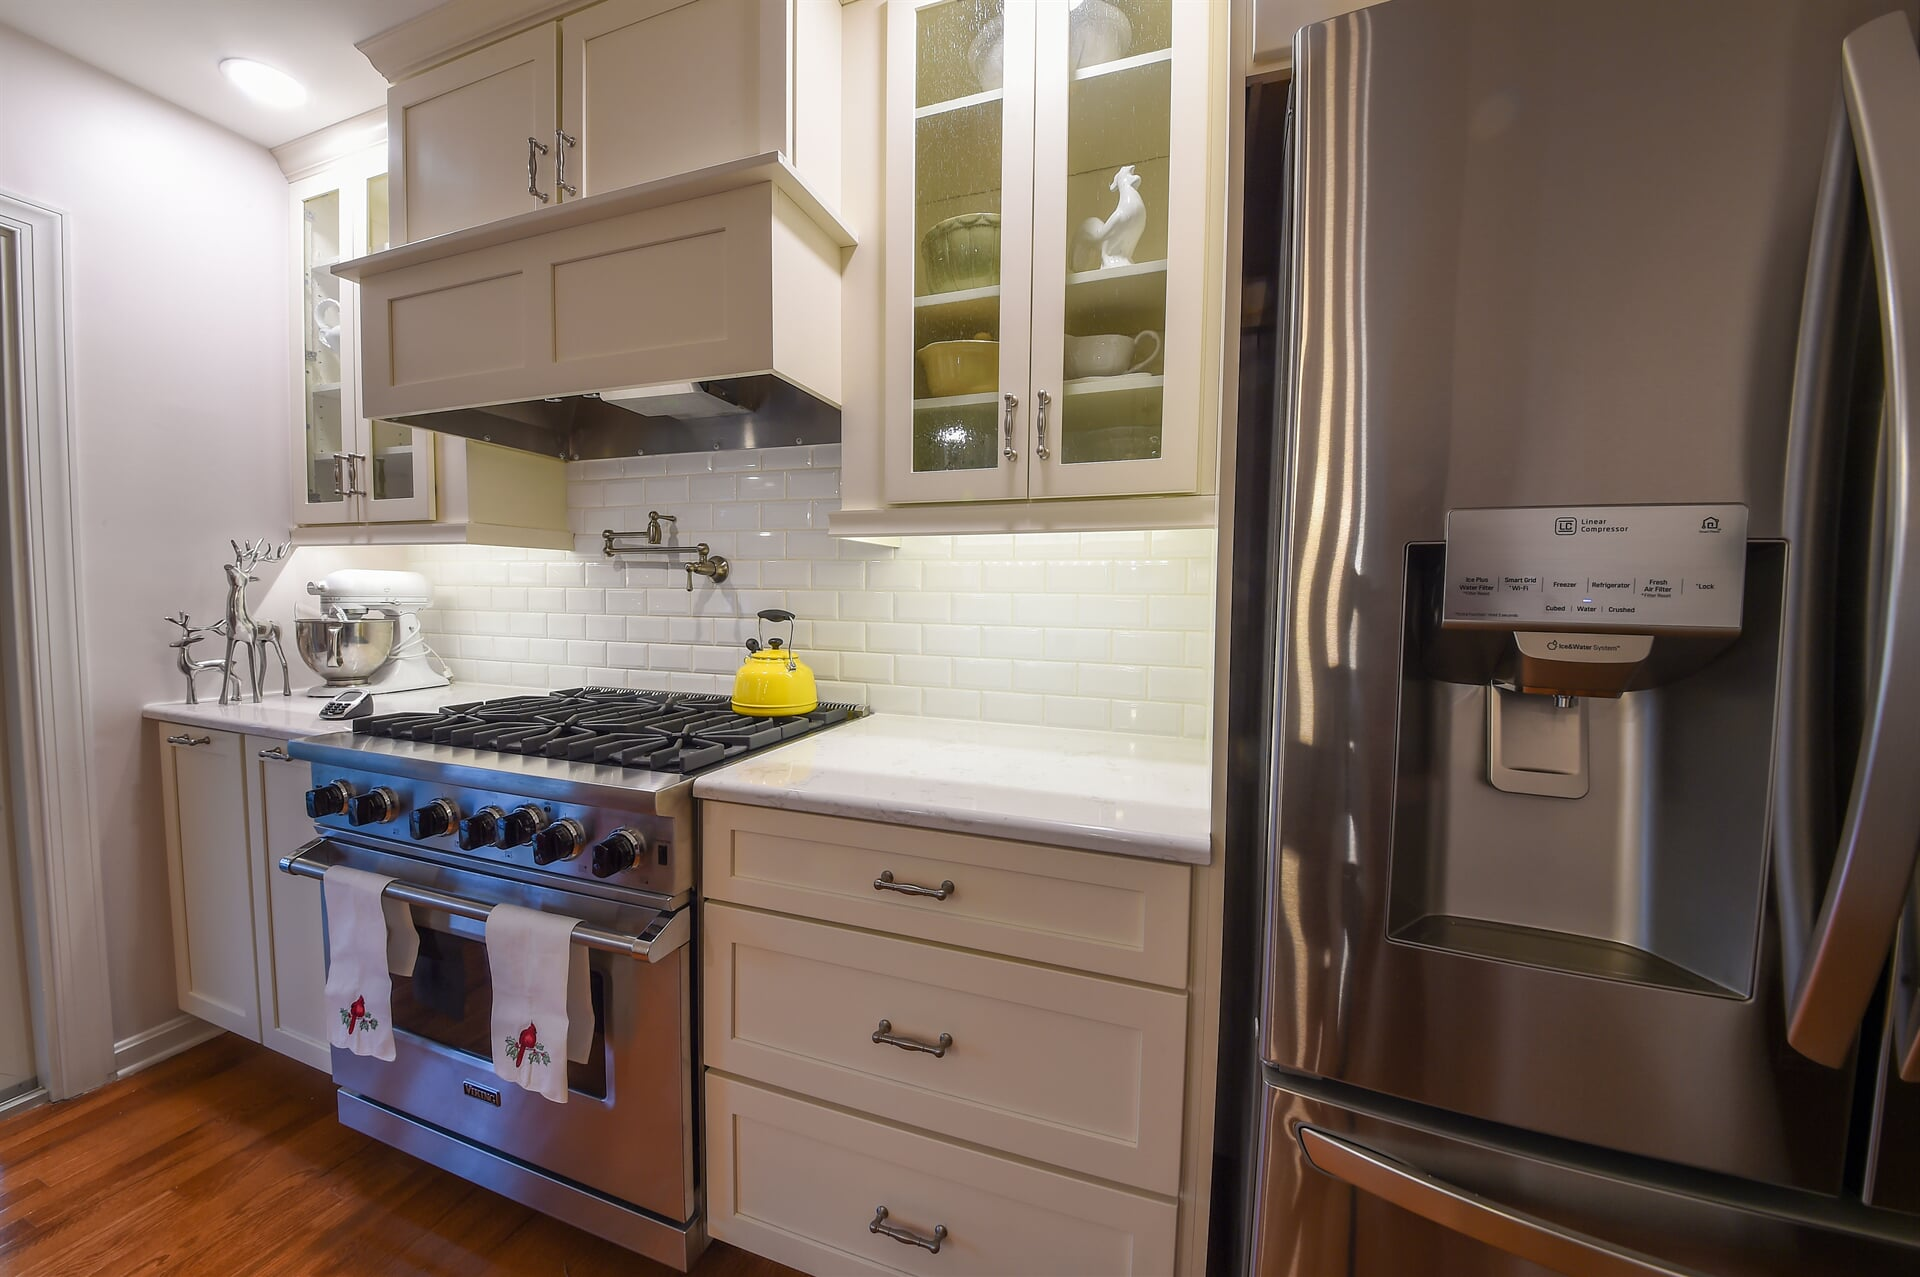 Kitchen remodeling in Dowell, MD by Southern Maryland Kitchen Bath Floors & Design